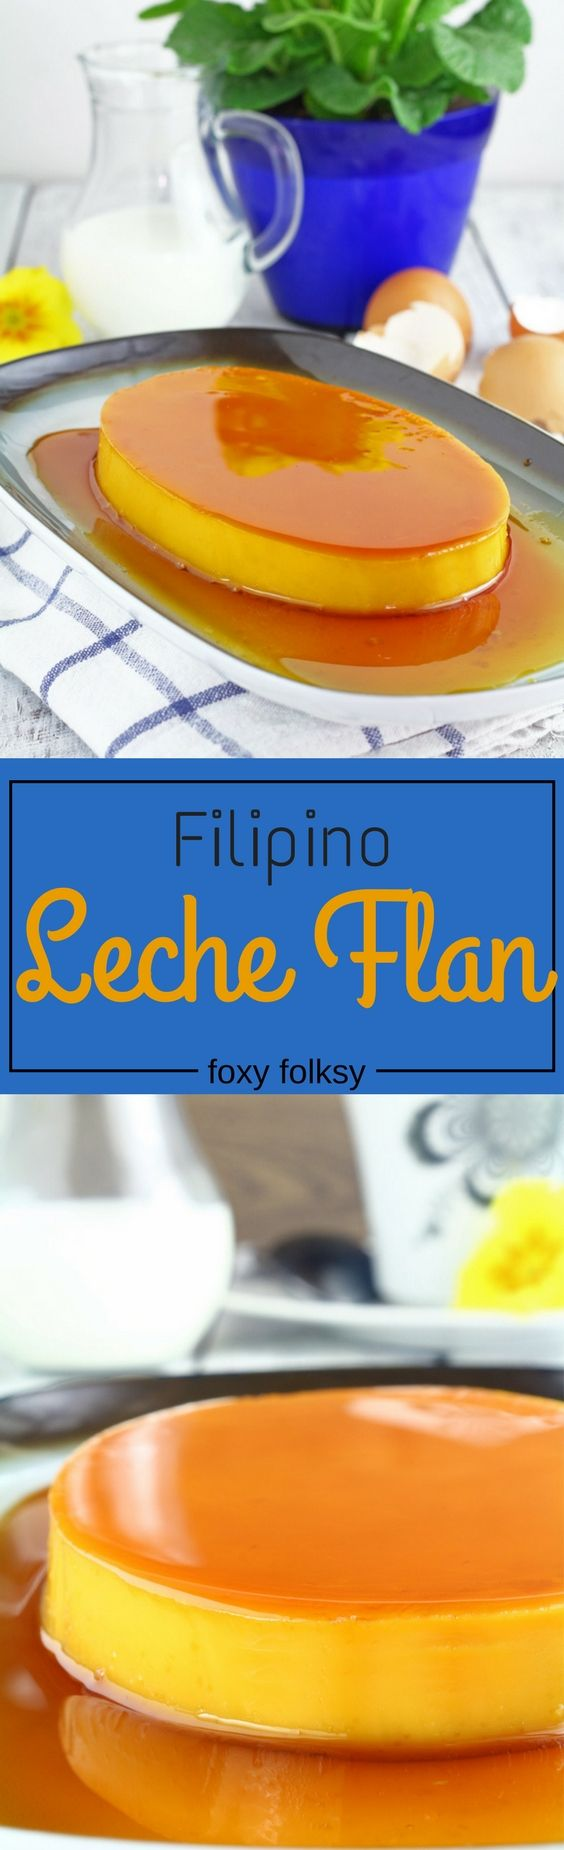 Learn the secret to a perfectly smooth and creamy Leche Flan. Get recipe here! | www.foxyfolksy.com #recipe #asianfood #filipinofood #dessert #flan